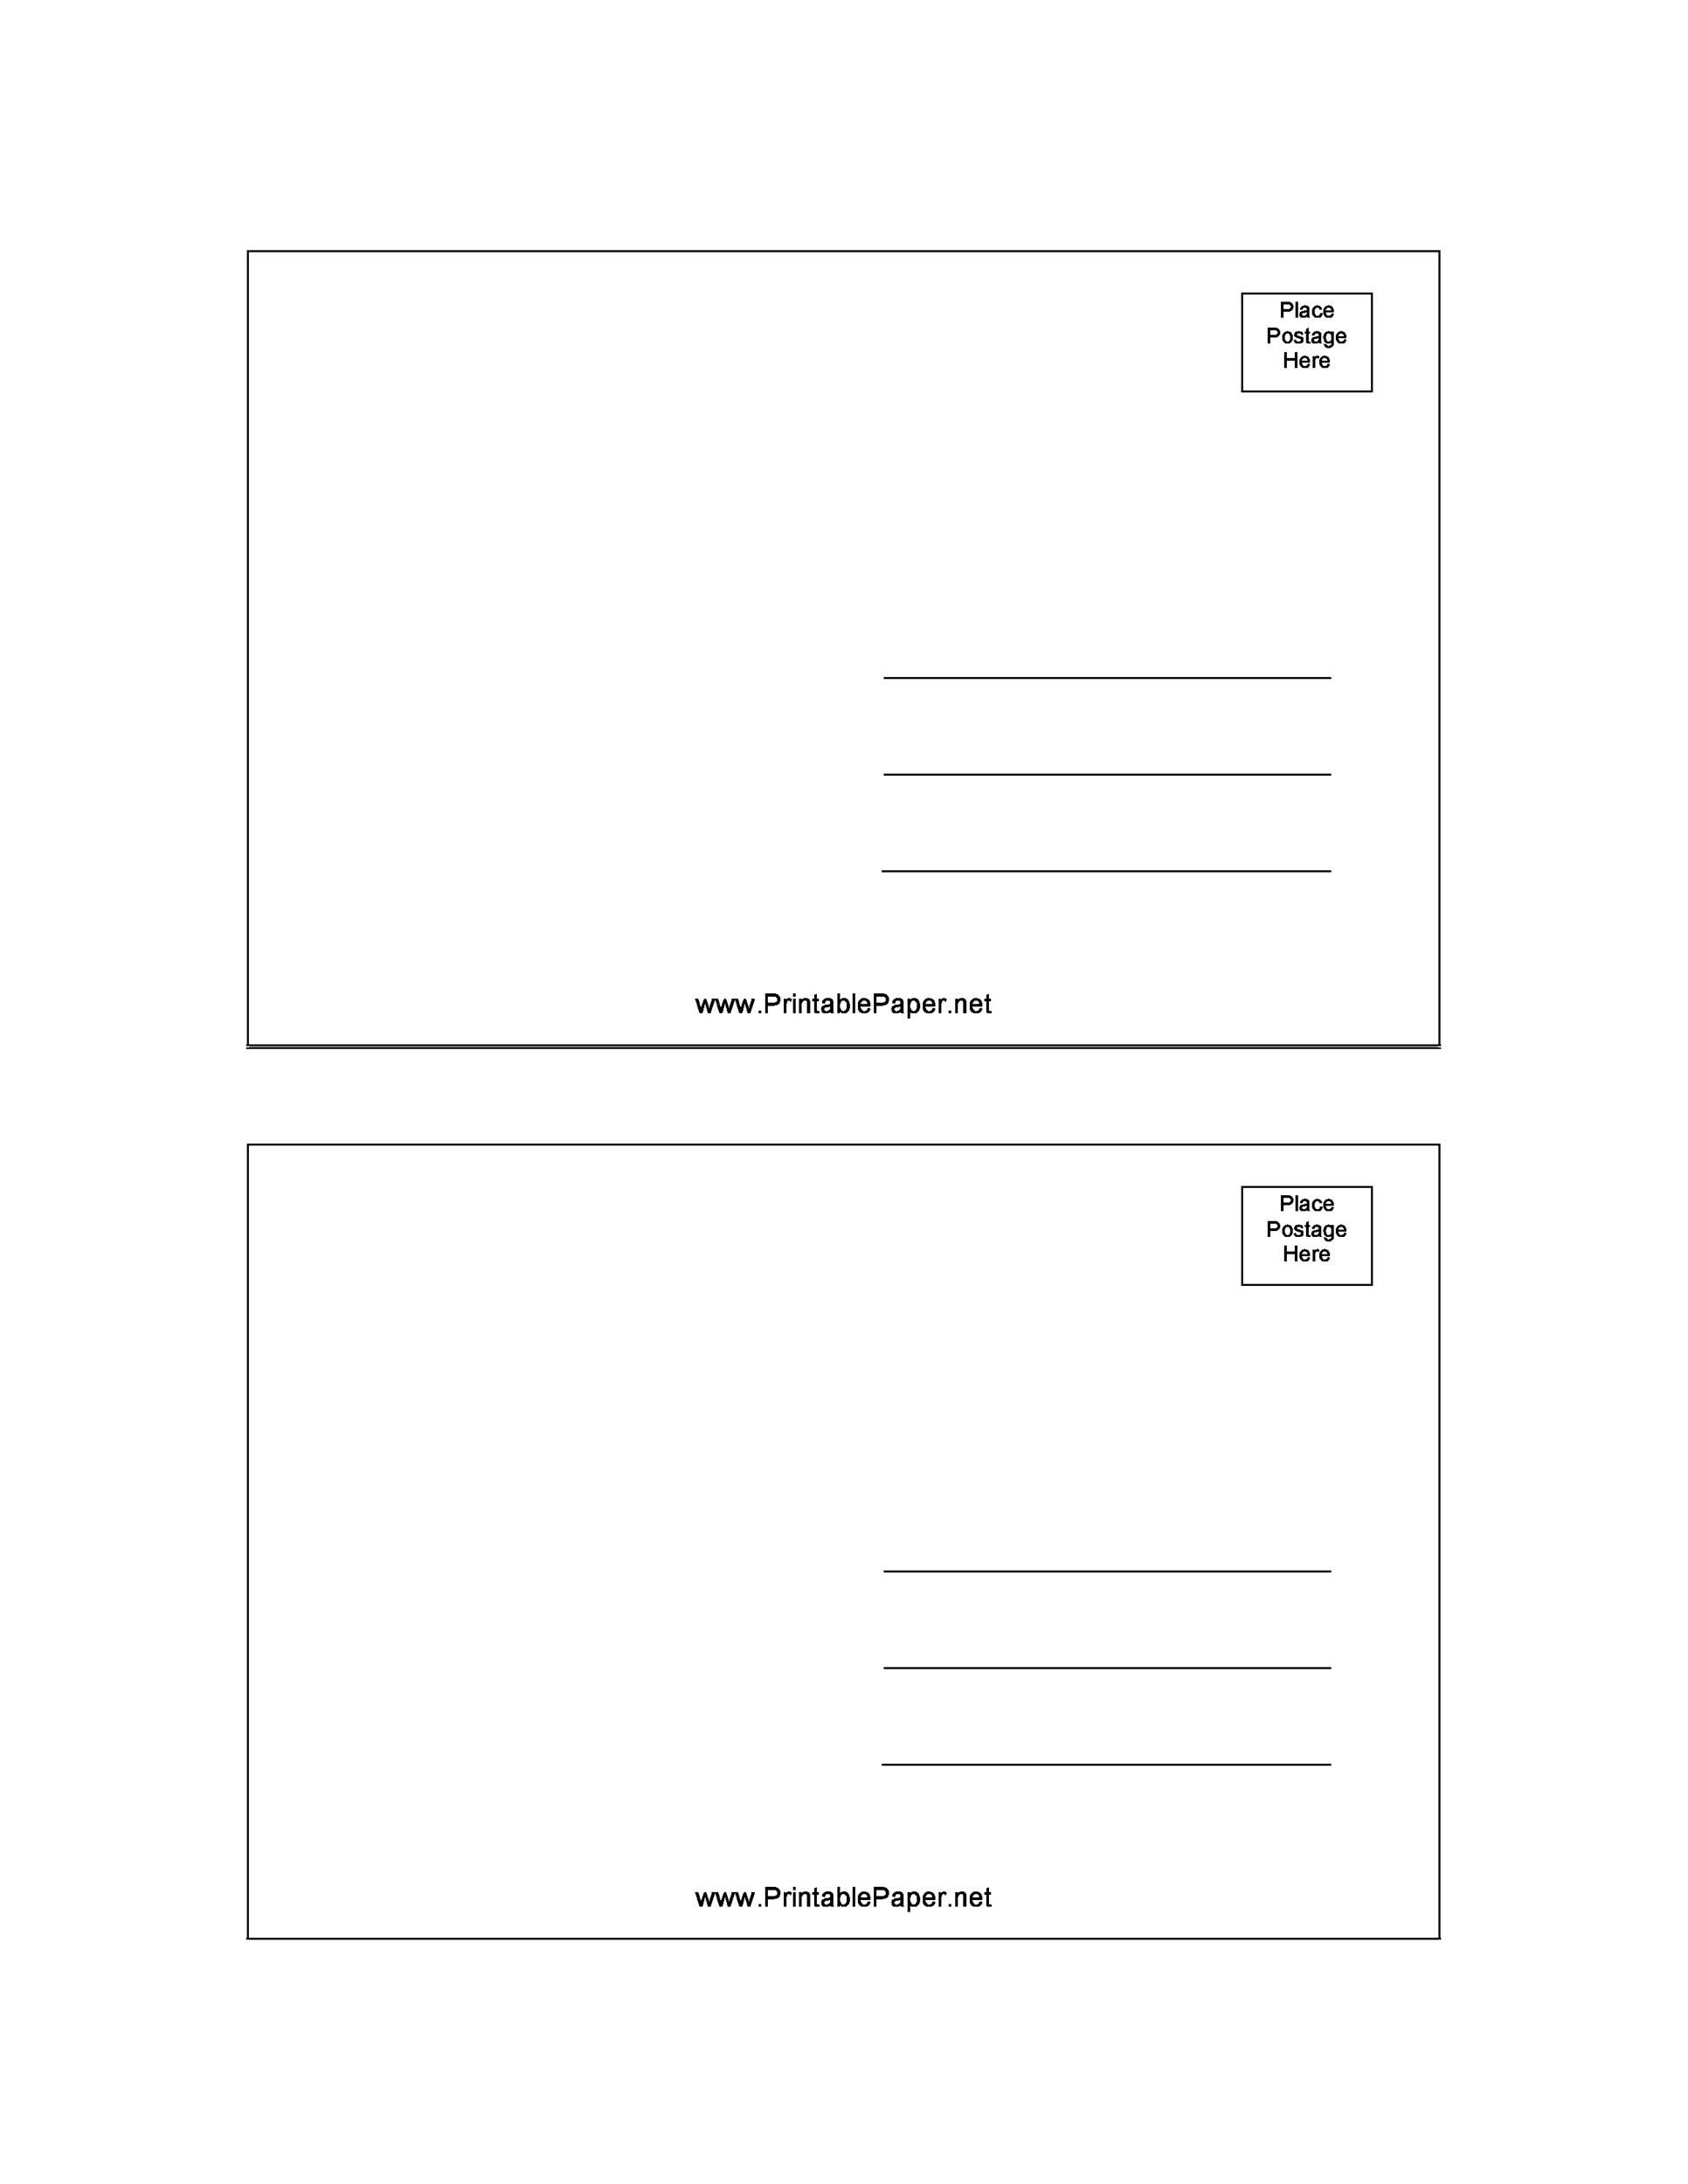 009 Top Free Blank Postcard Template For Word Example  Printable MicrosoftFull